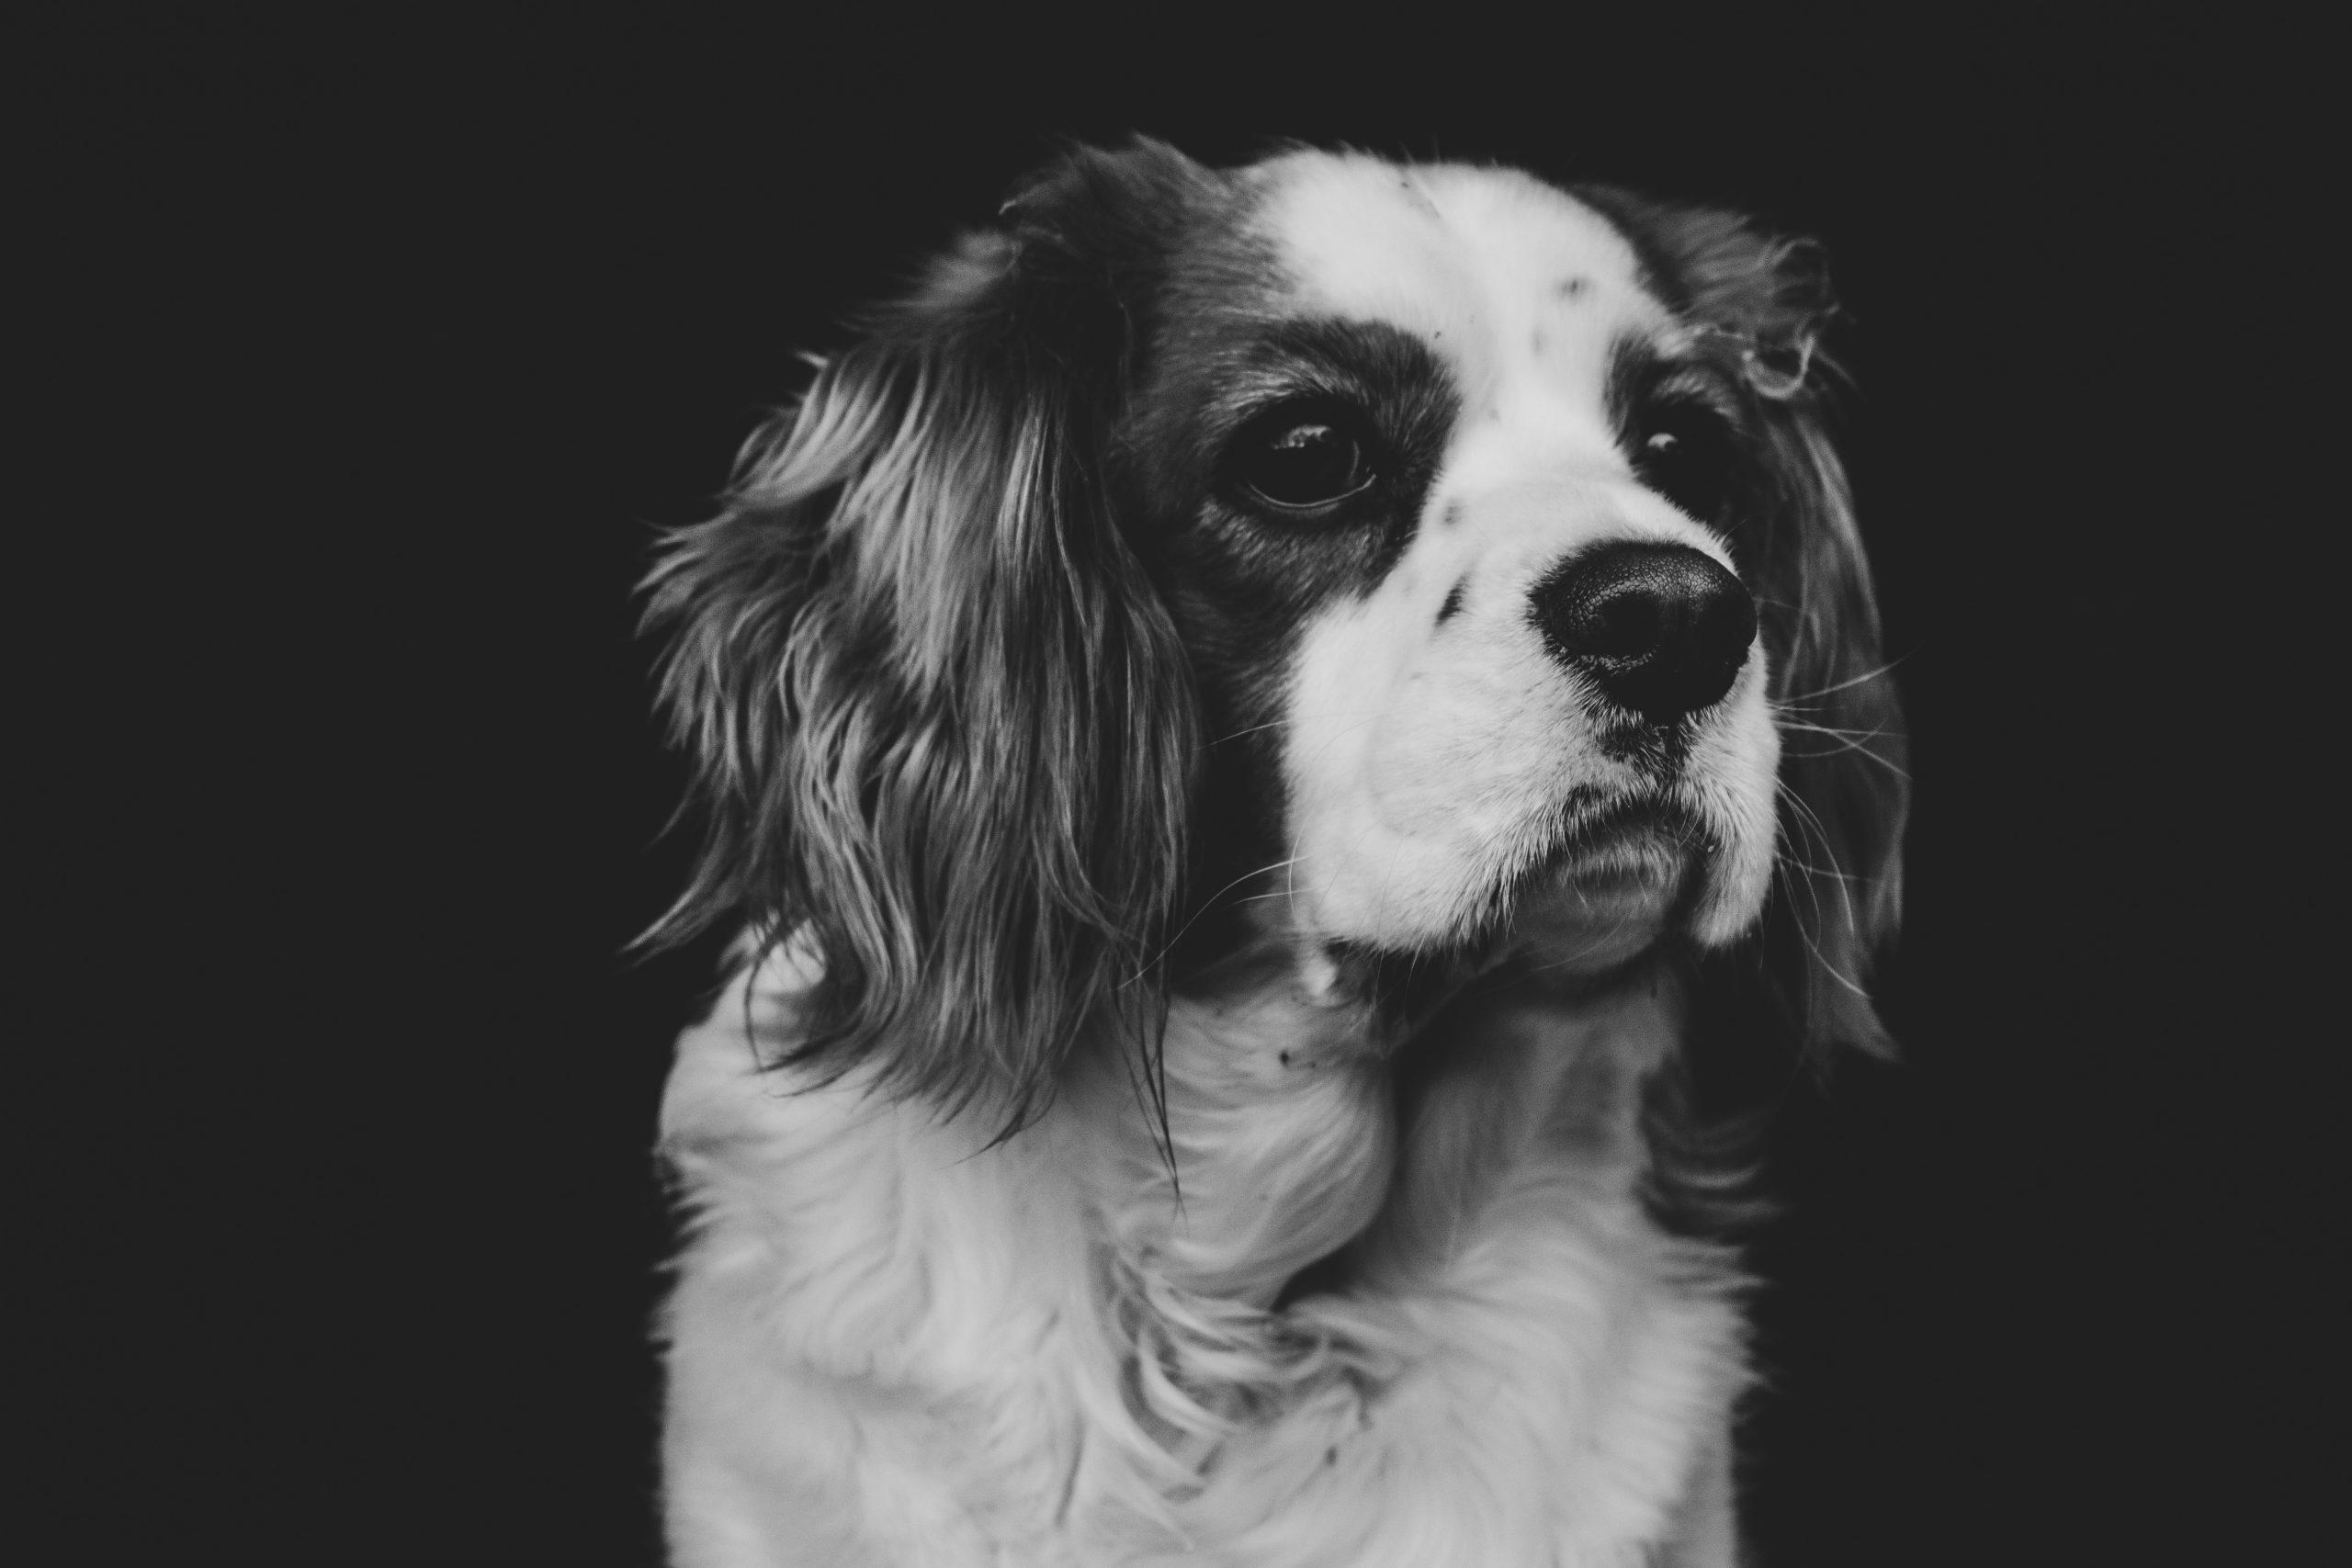 Black and White Animal Portraits: Alice the King Charles Cavalier